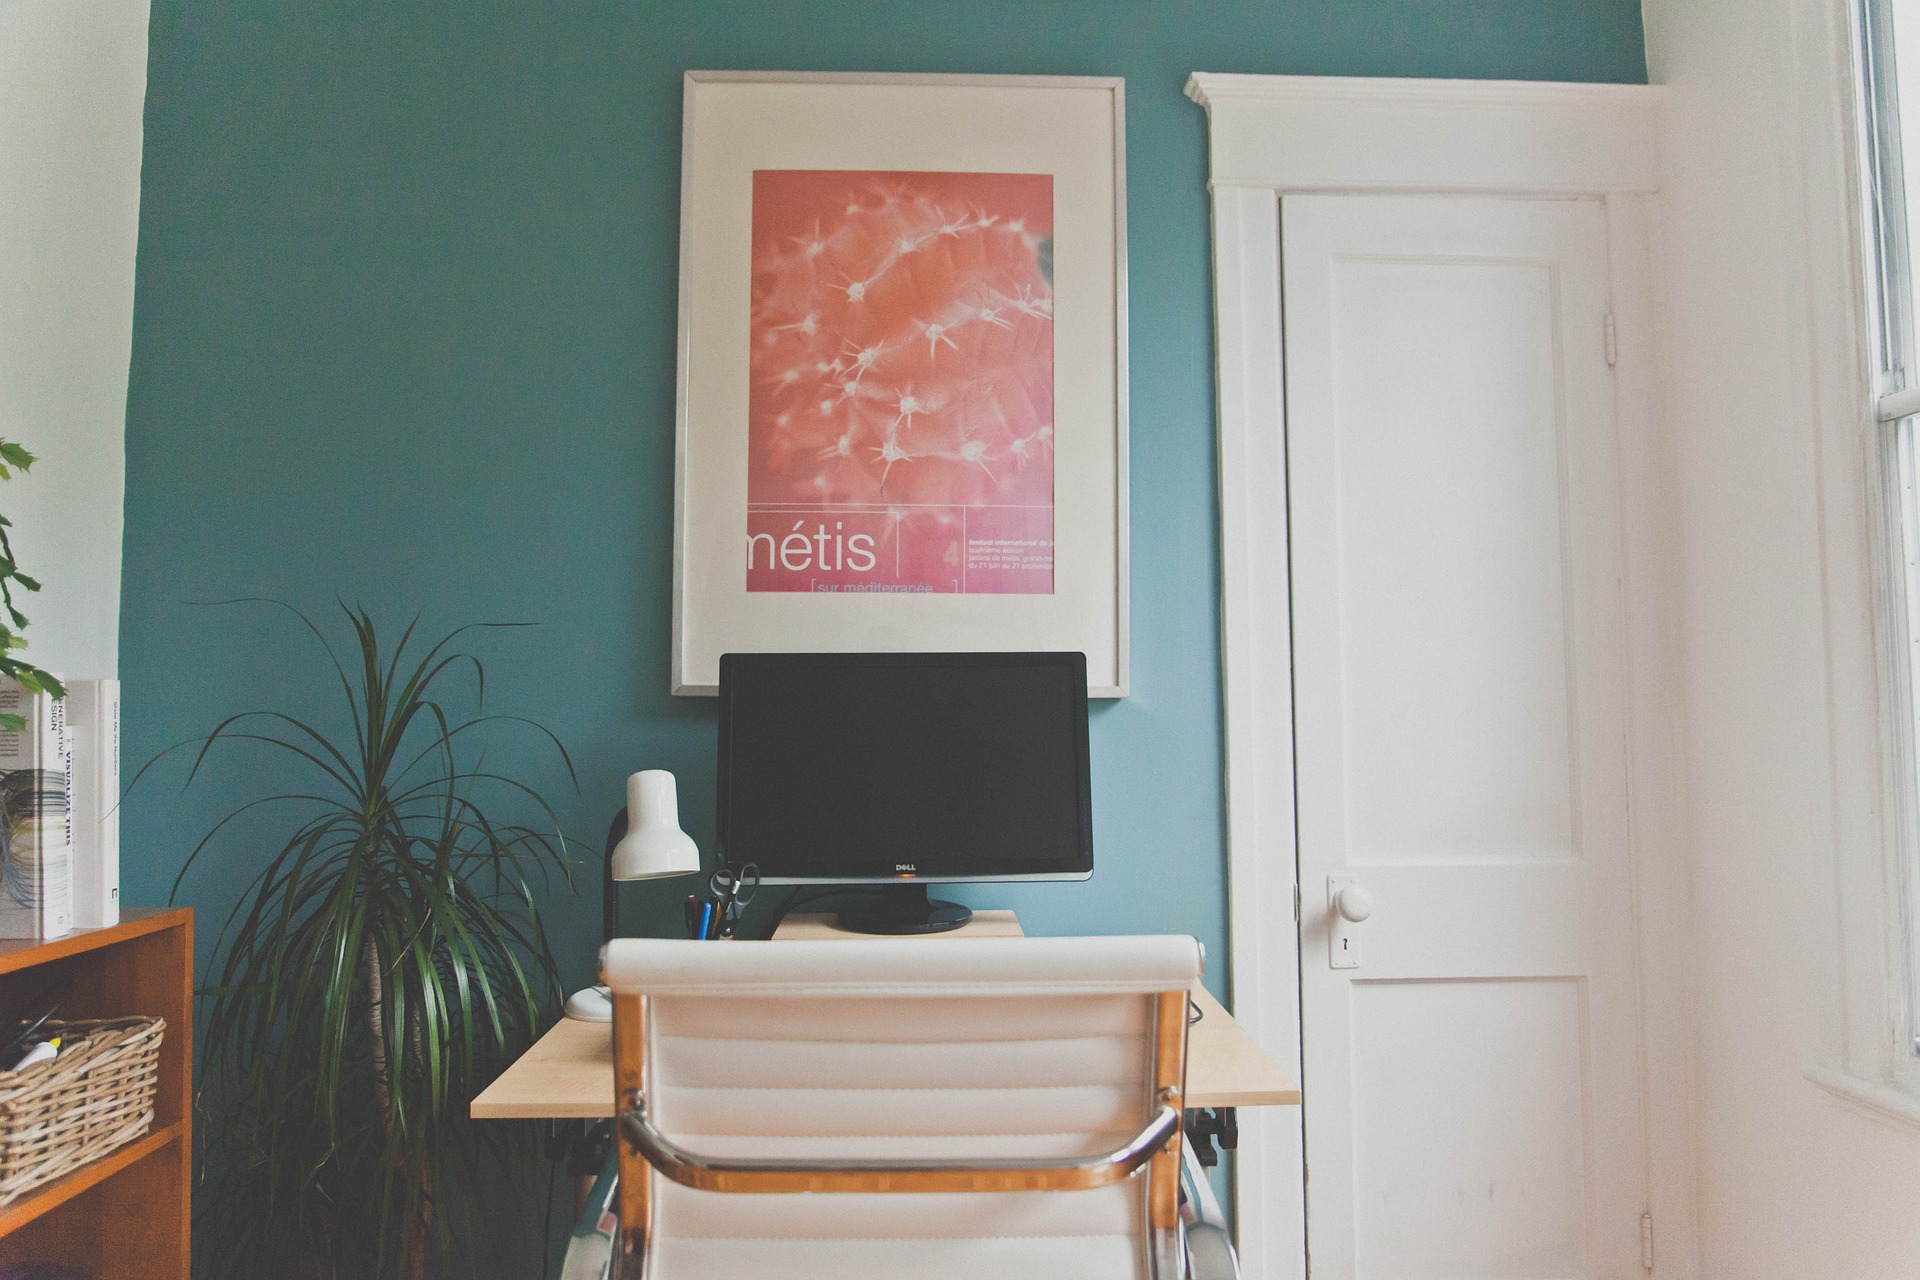 Workstation setup in a room with blue walls and a red poster